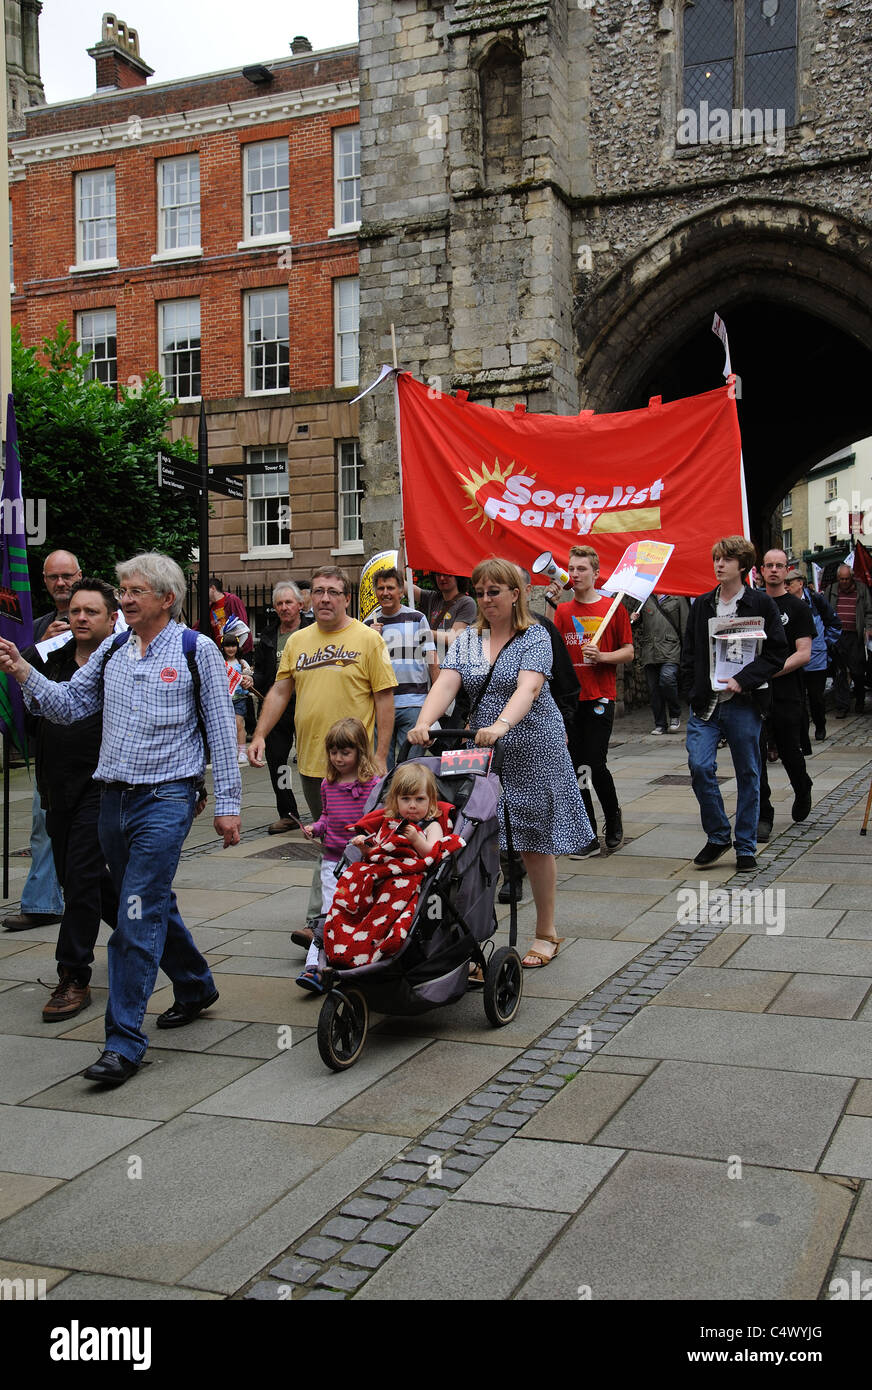 Trade Unionists & Socialist Party members protesting against public service cuts enter the historic city of Winchester Stock Photo